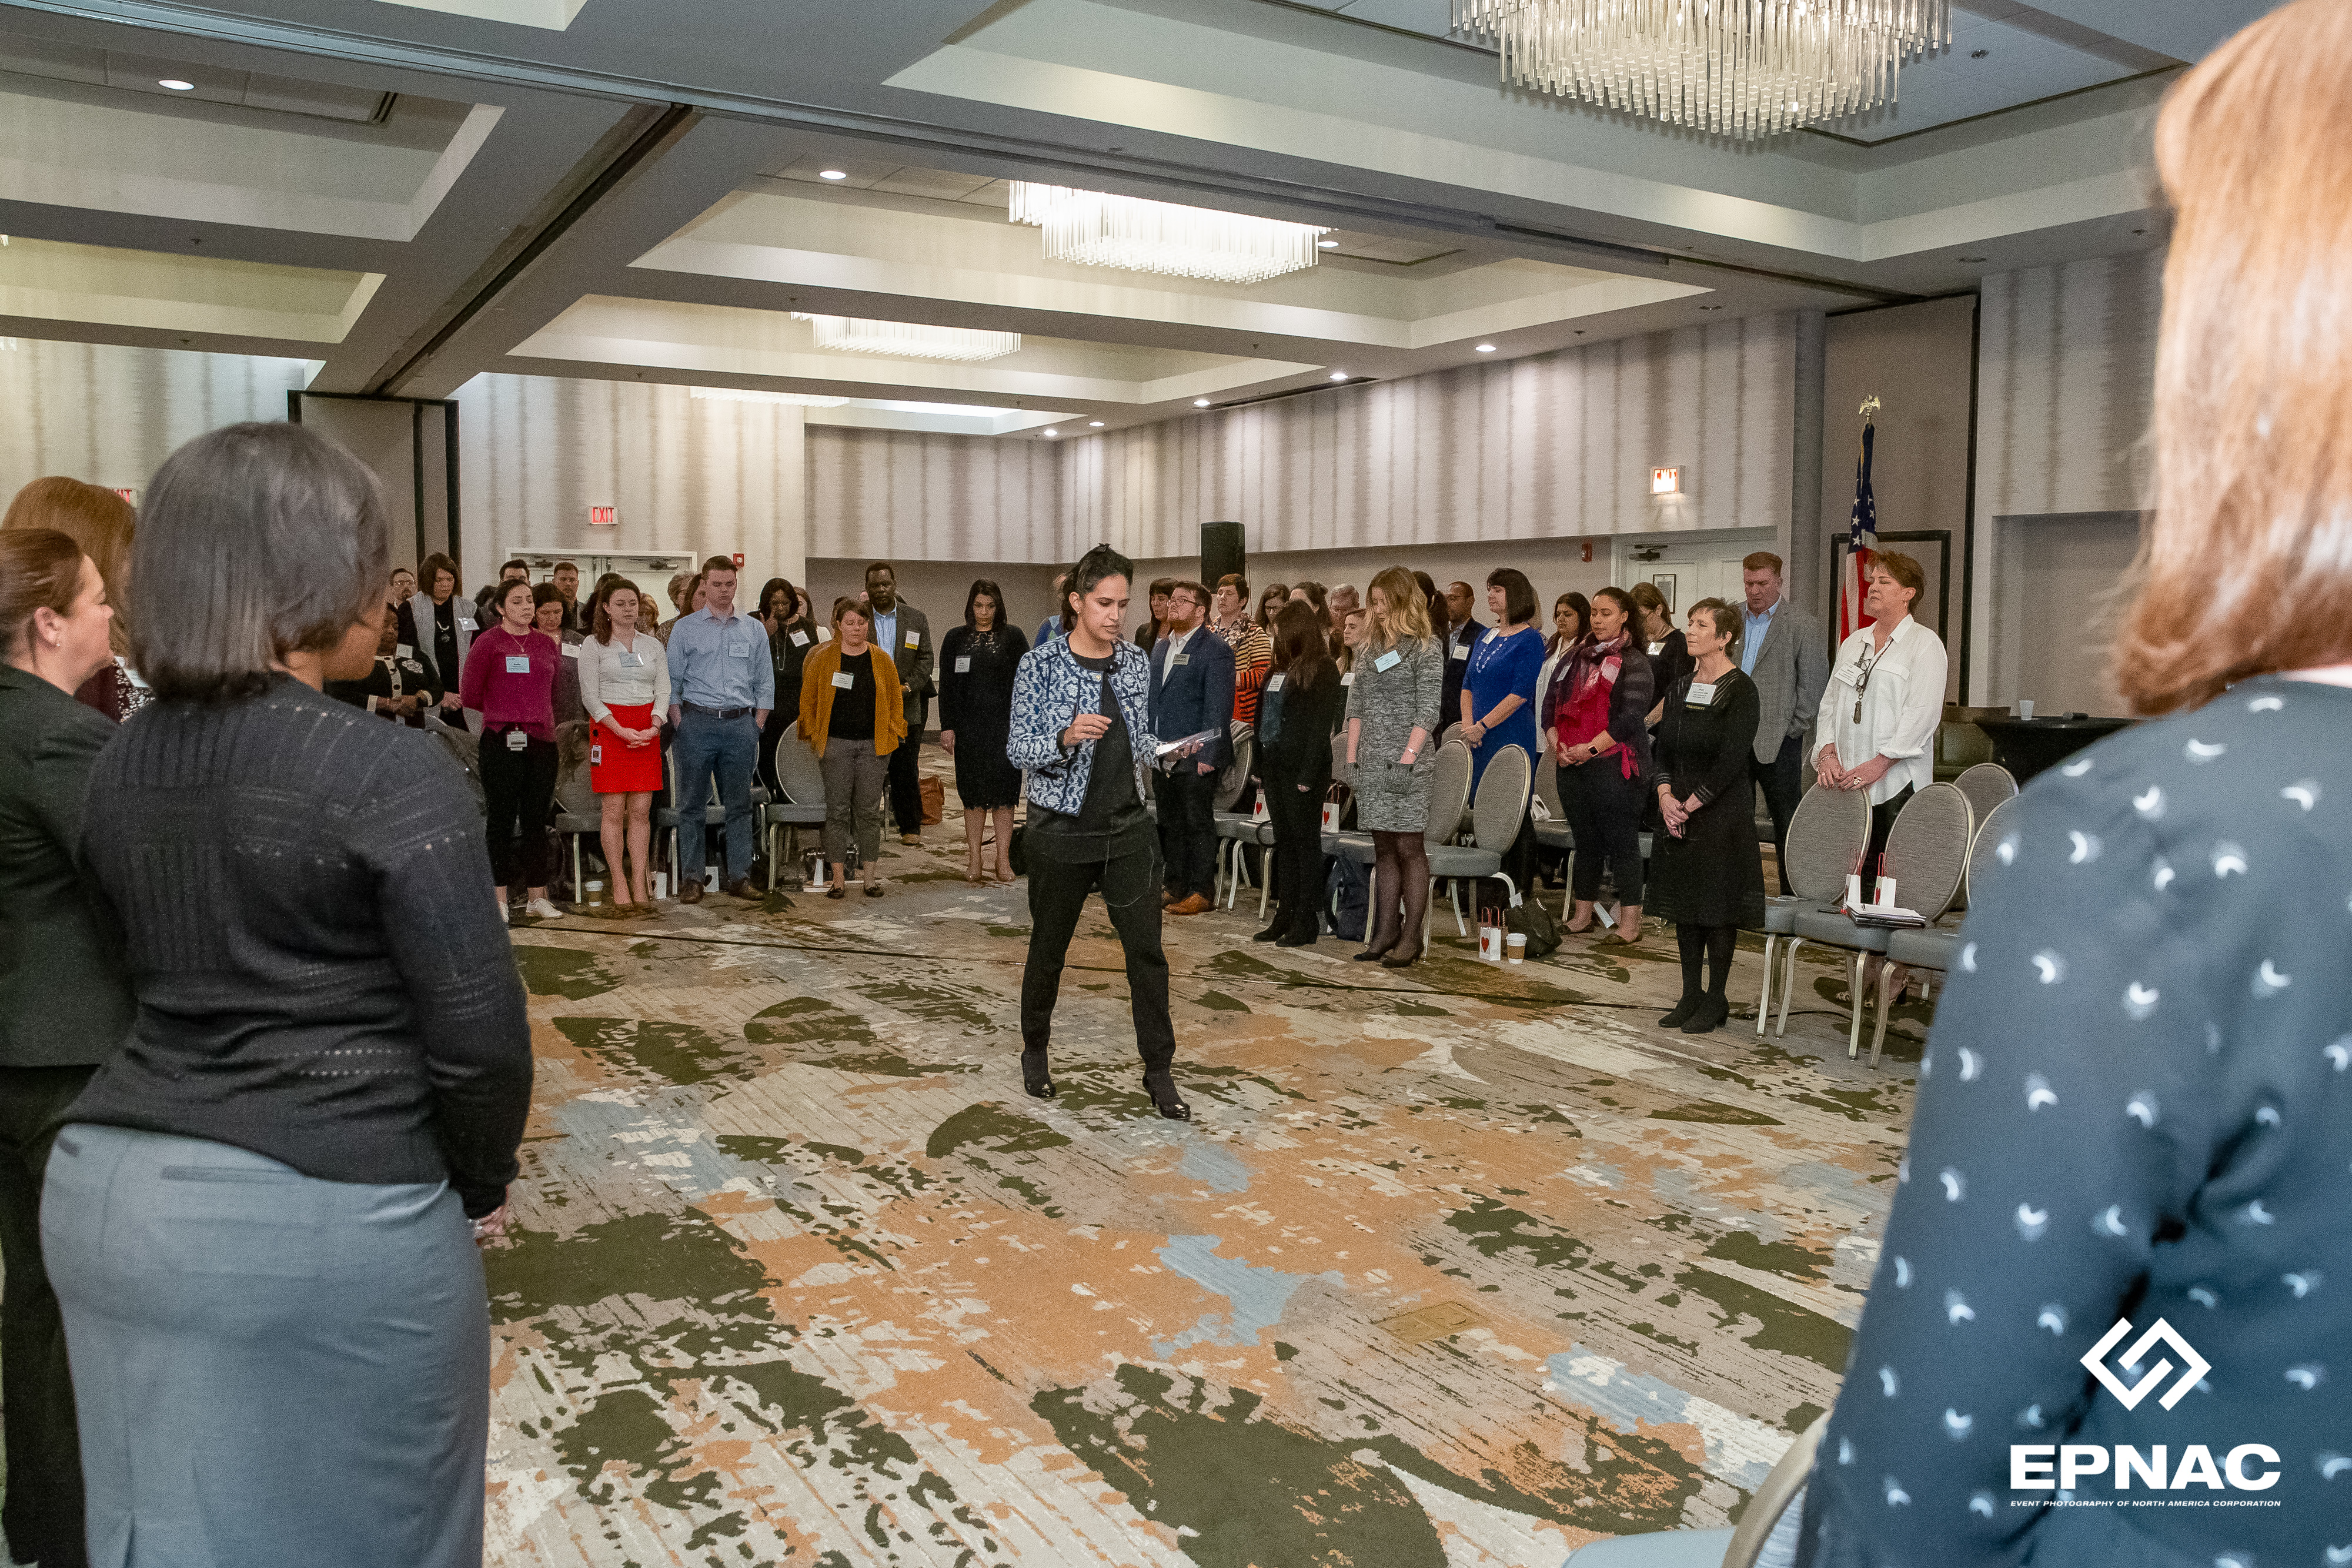 Disrupt + ED: The Art of Gathering Experience